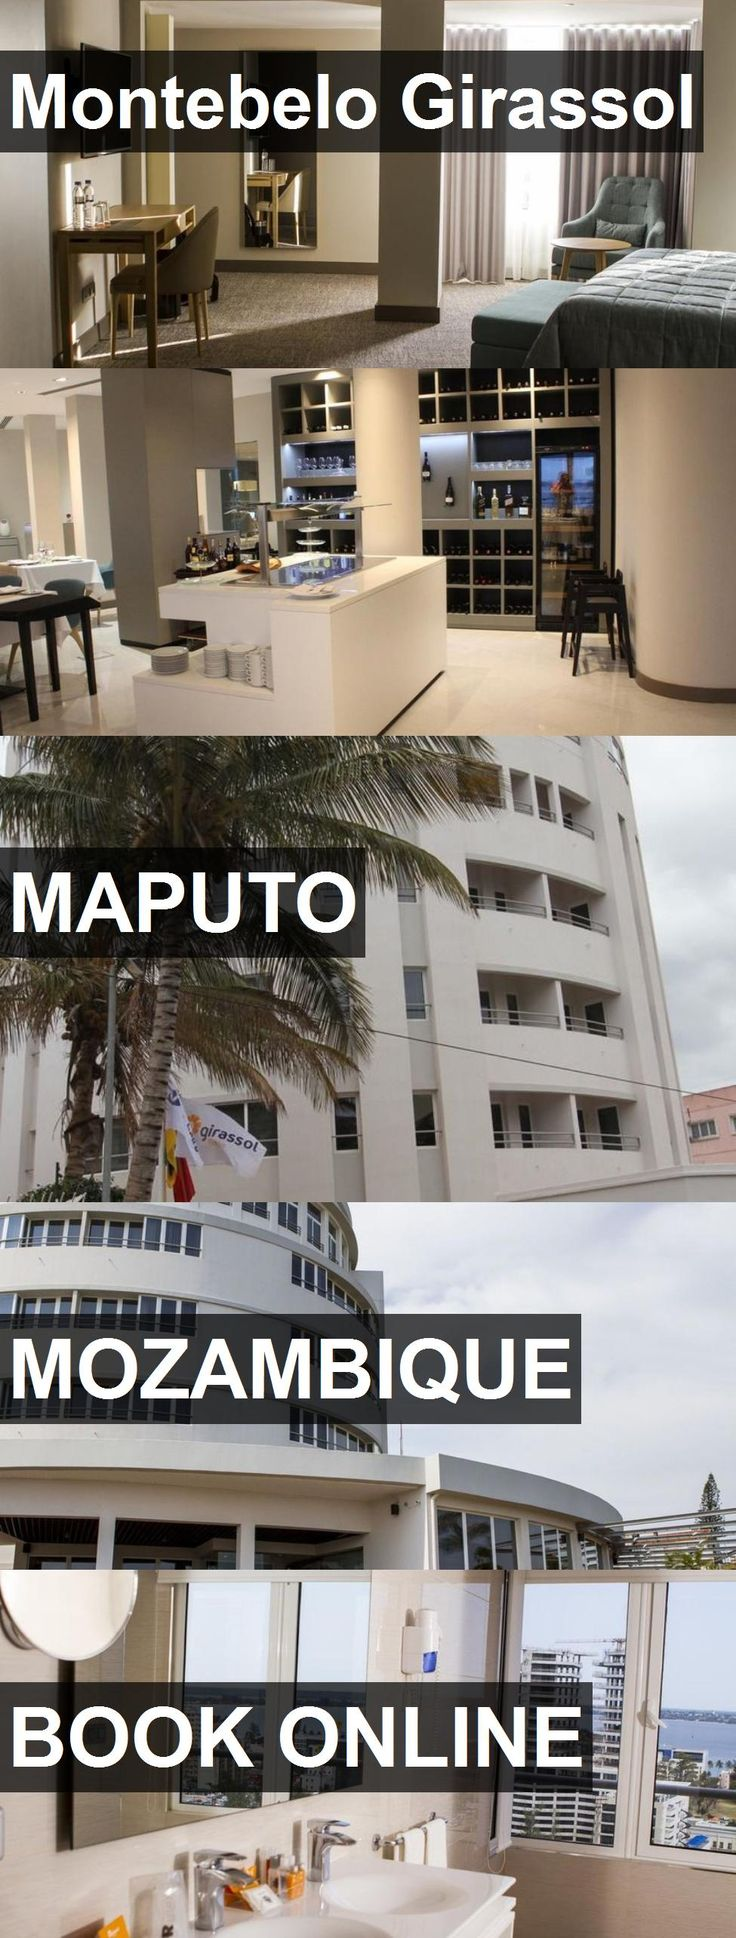 Hotel Montebelo Girassol in Maputo, Mozambique. For more information, photos, reviews and best prices please follow the link. #Mozambique #Maputo #travel #vacation #hotel